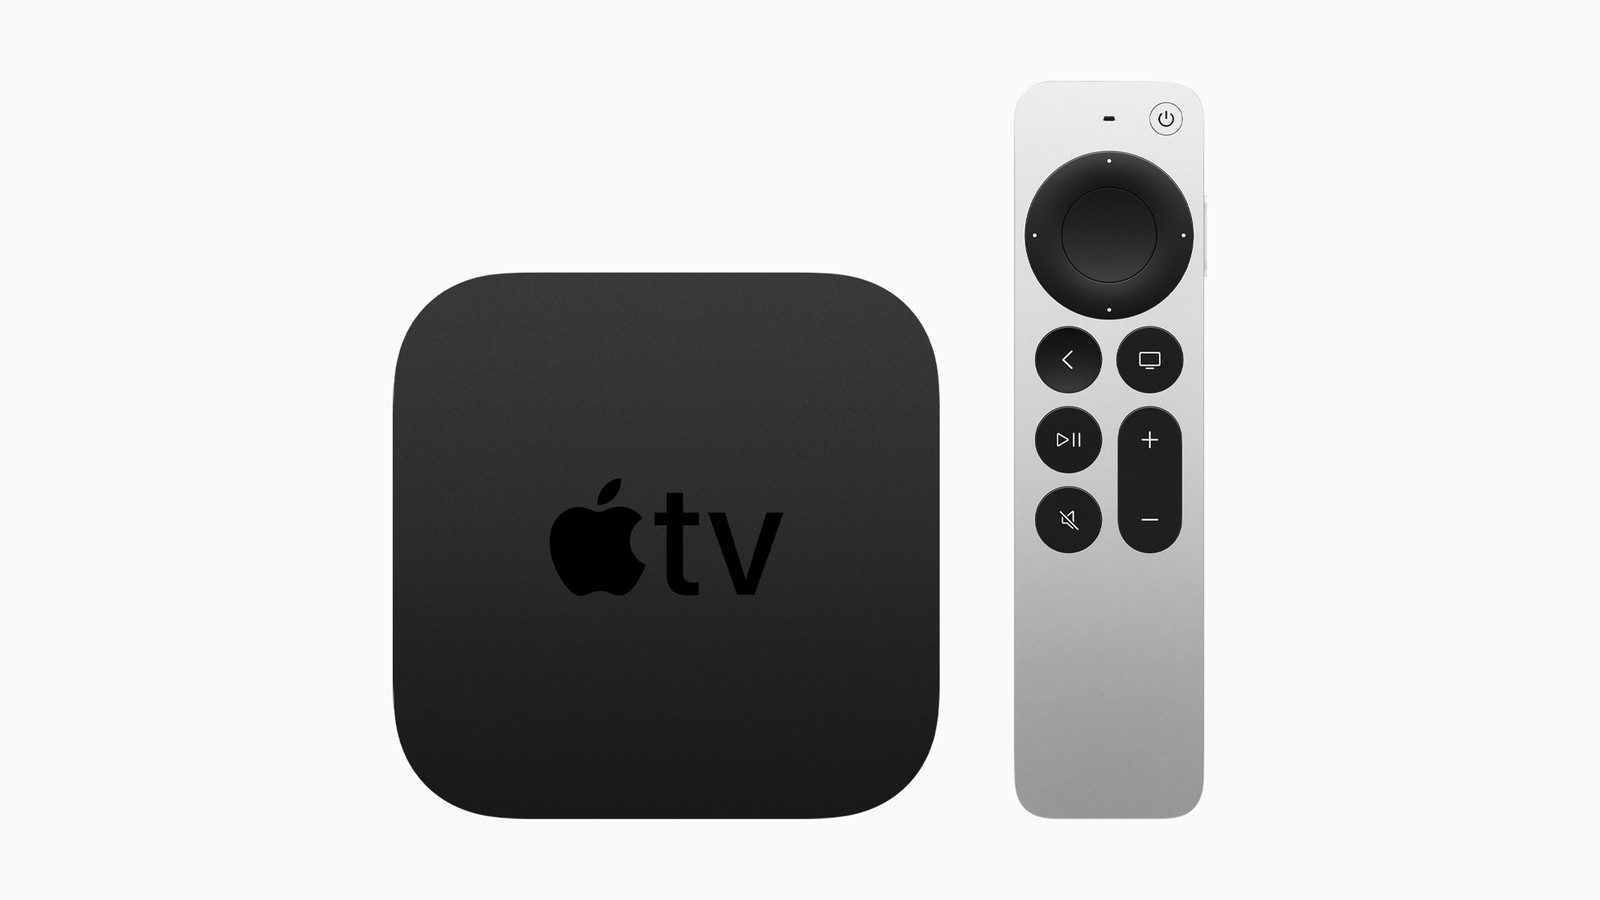 Apple Announces Sixth-Gen Apple TV With A12 Chip And New Siri Remote